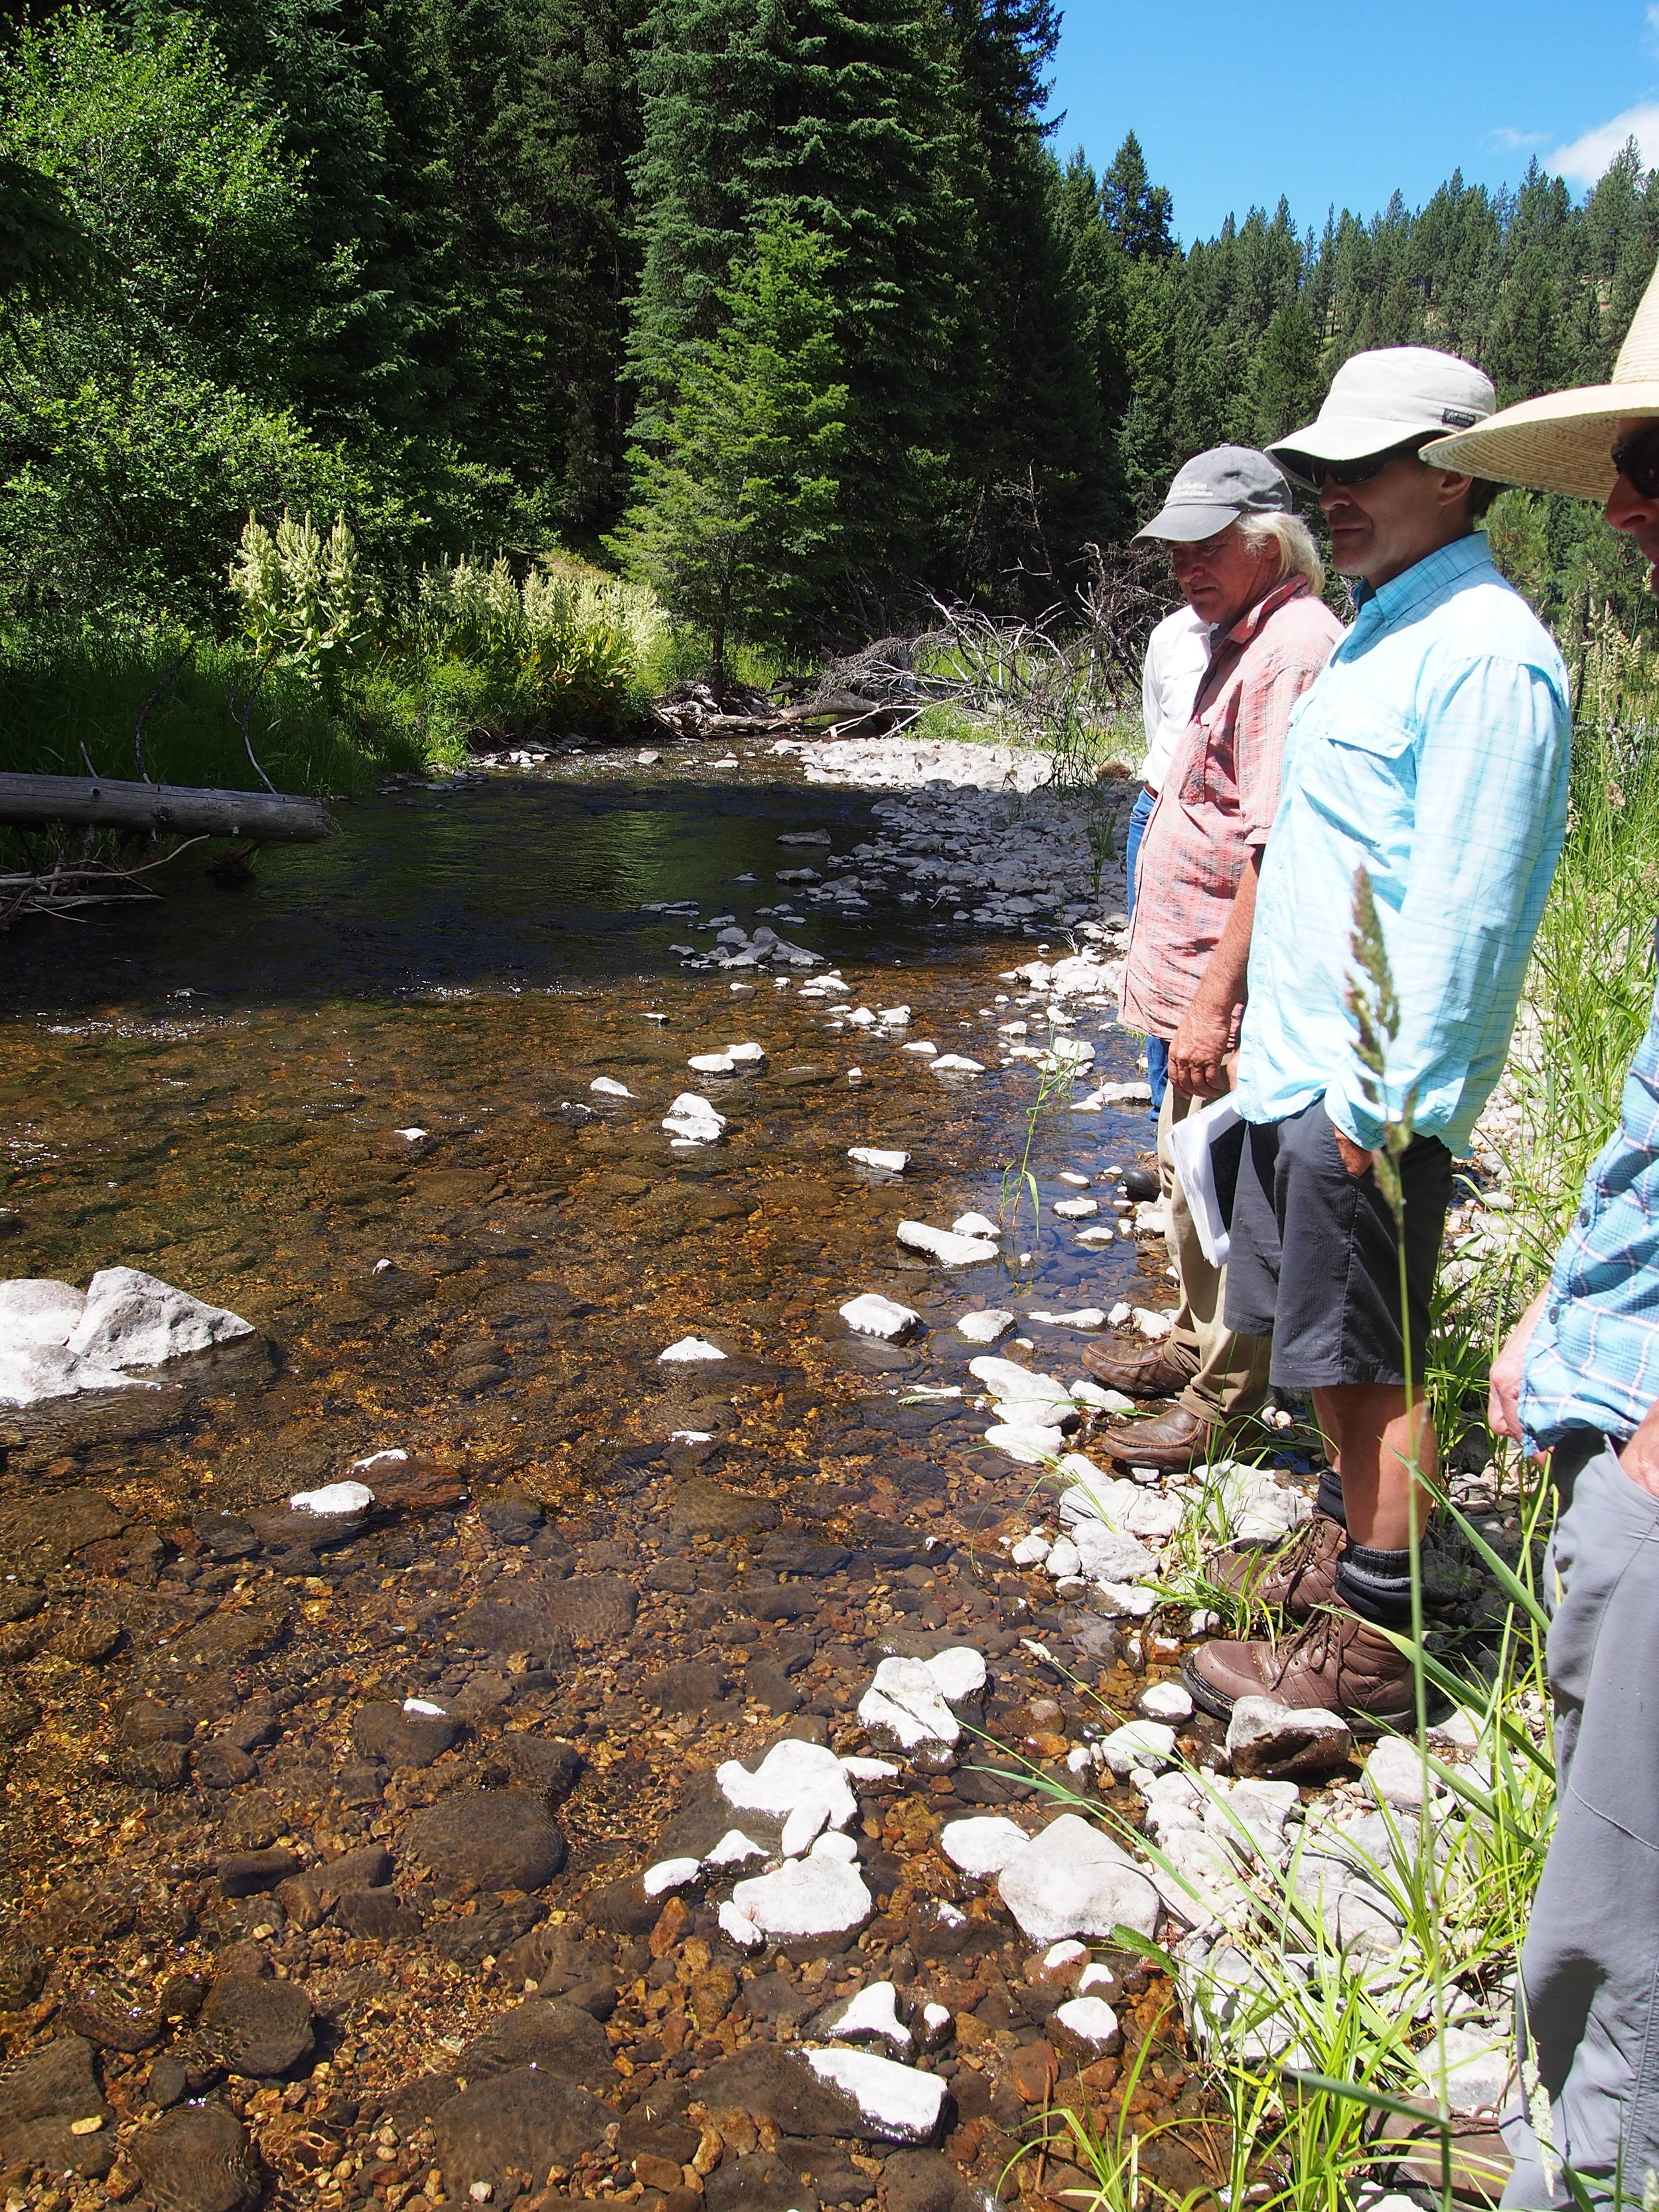 Don and grassland crew surveying creek.